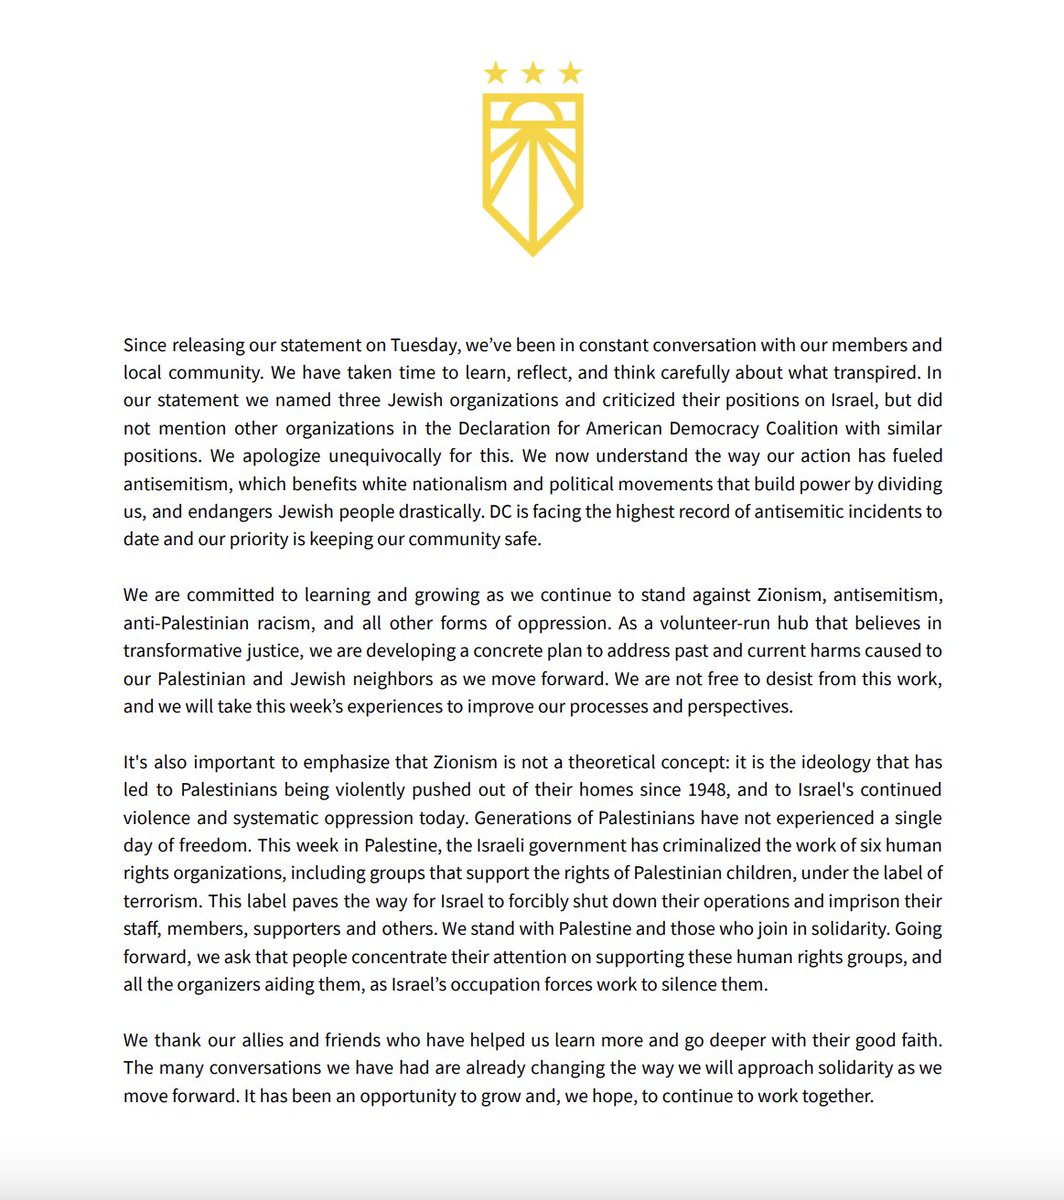 Please read our statement regarding our post on Tuesday